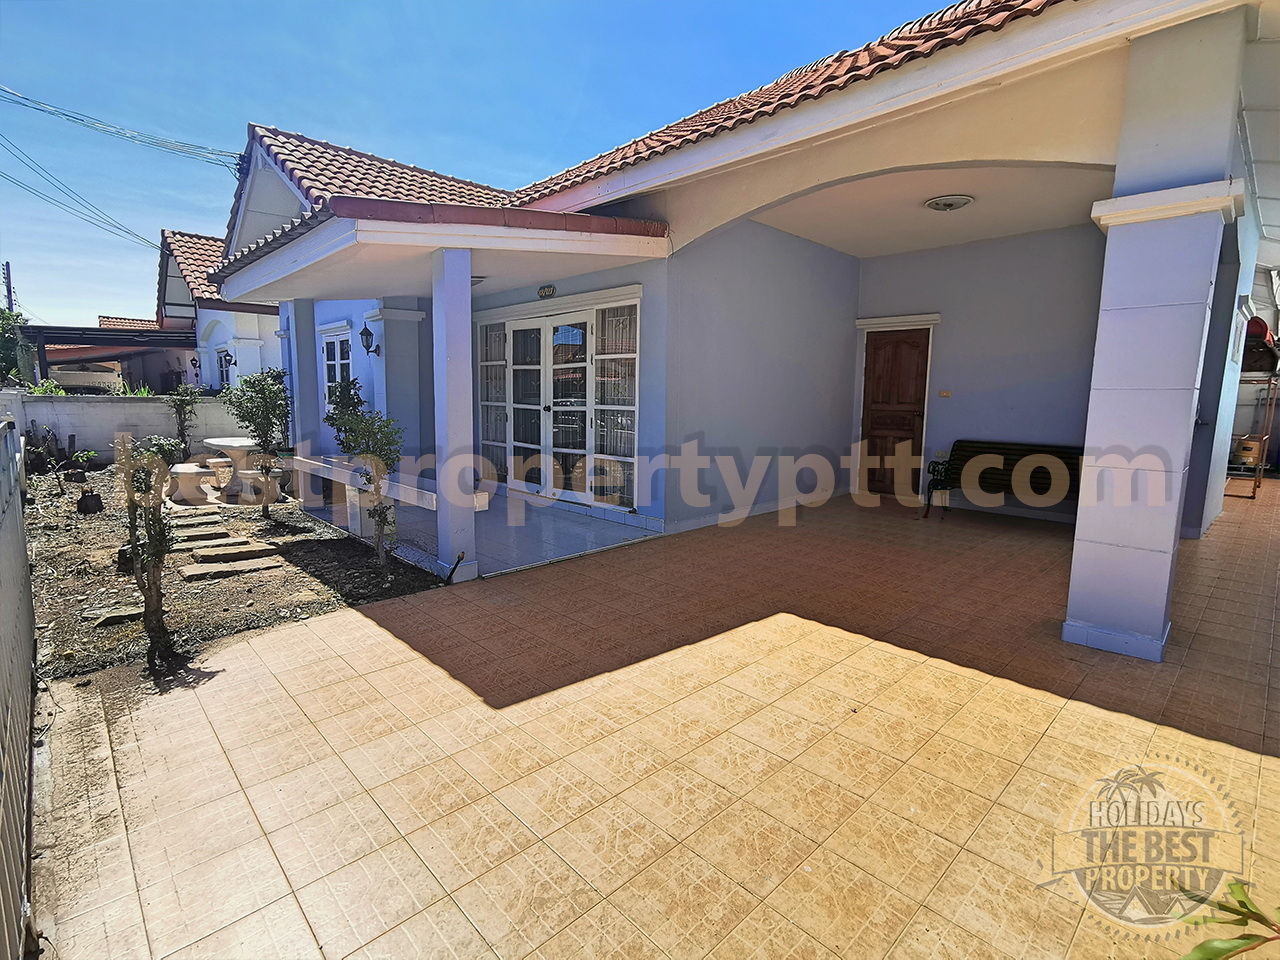 House in Bangsaray, 5-minute drive to the Sea